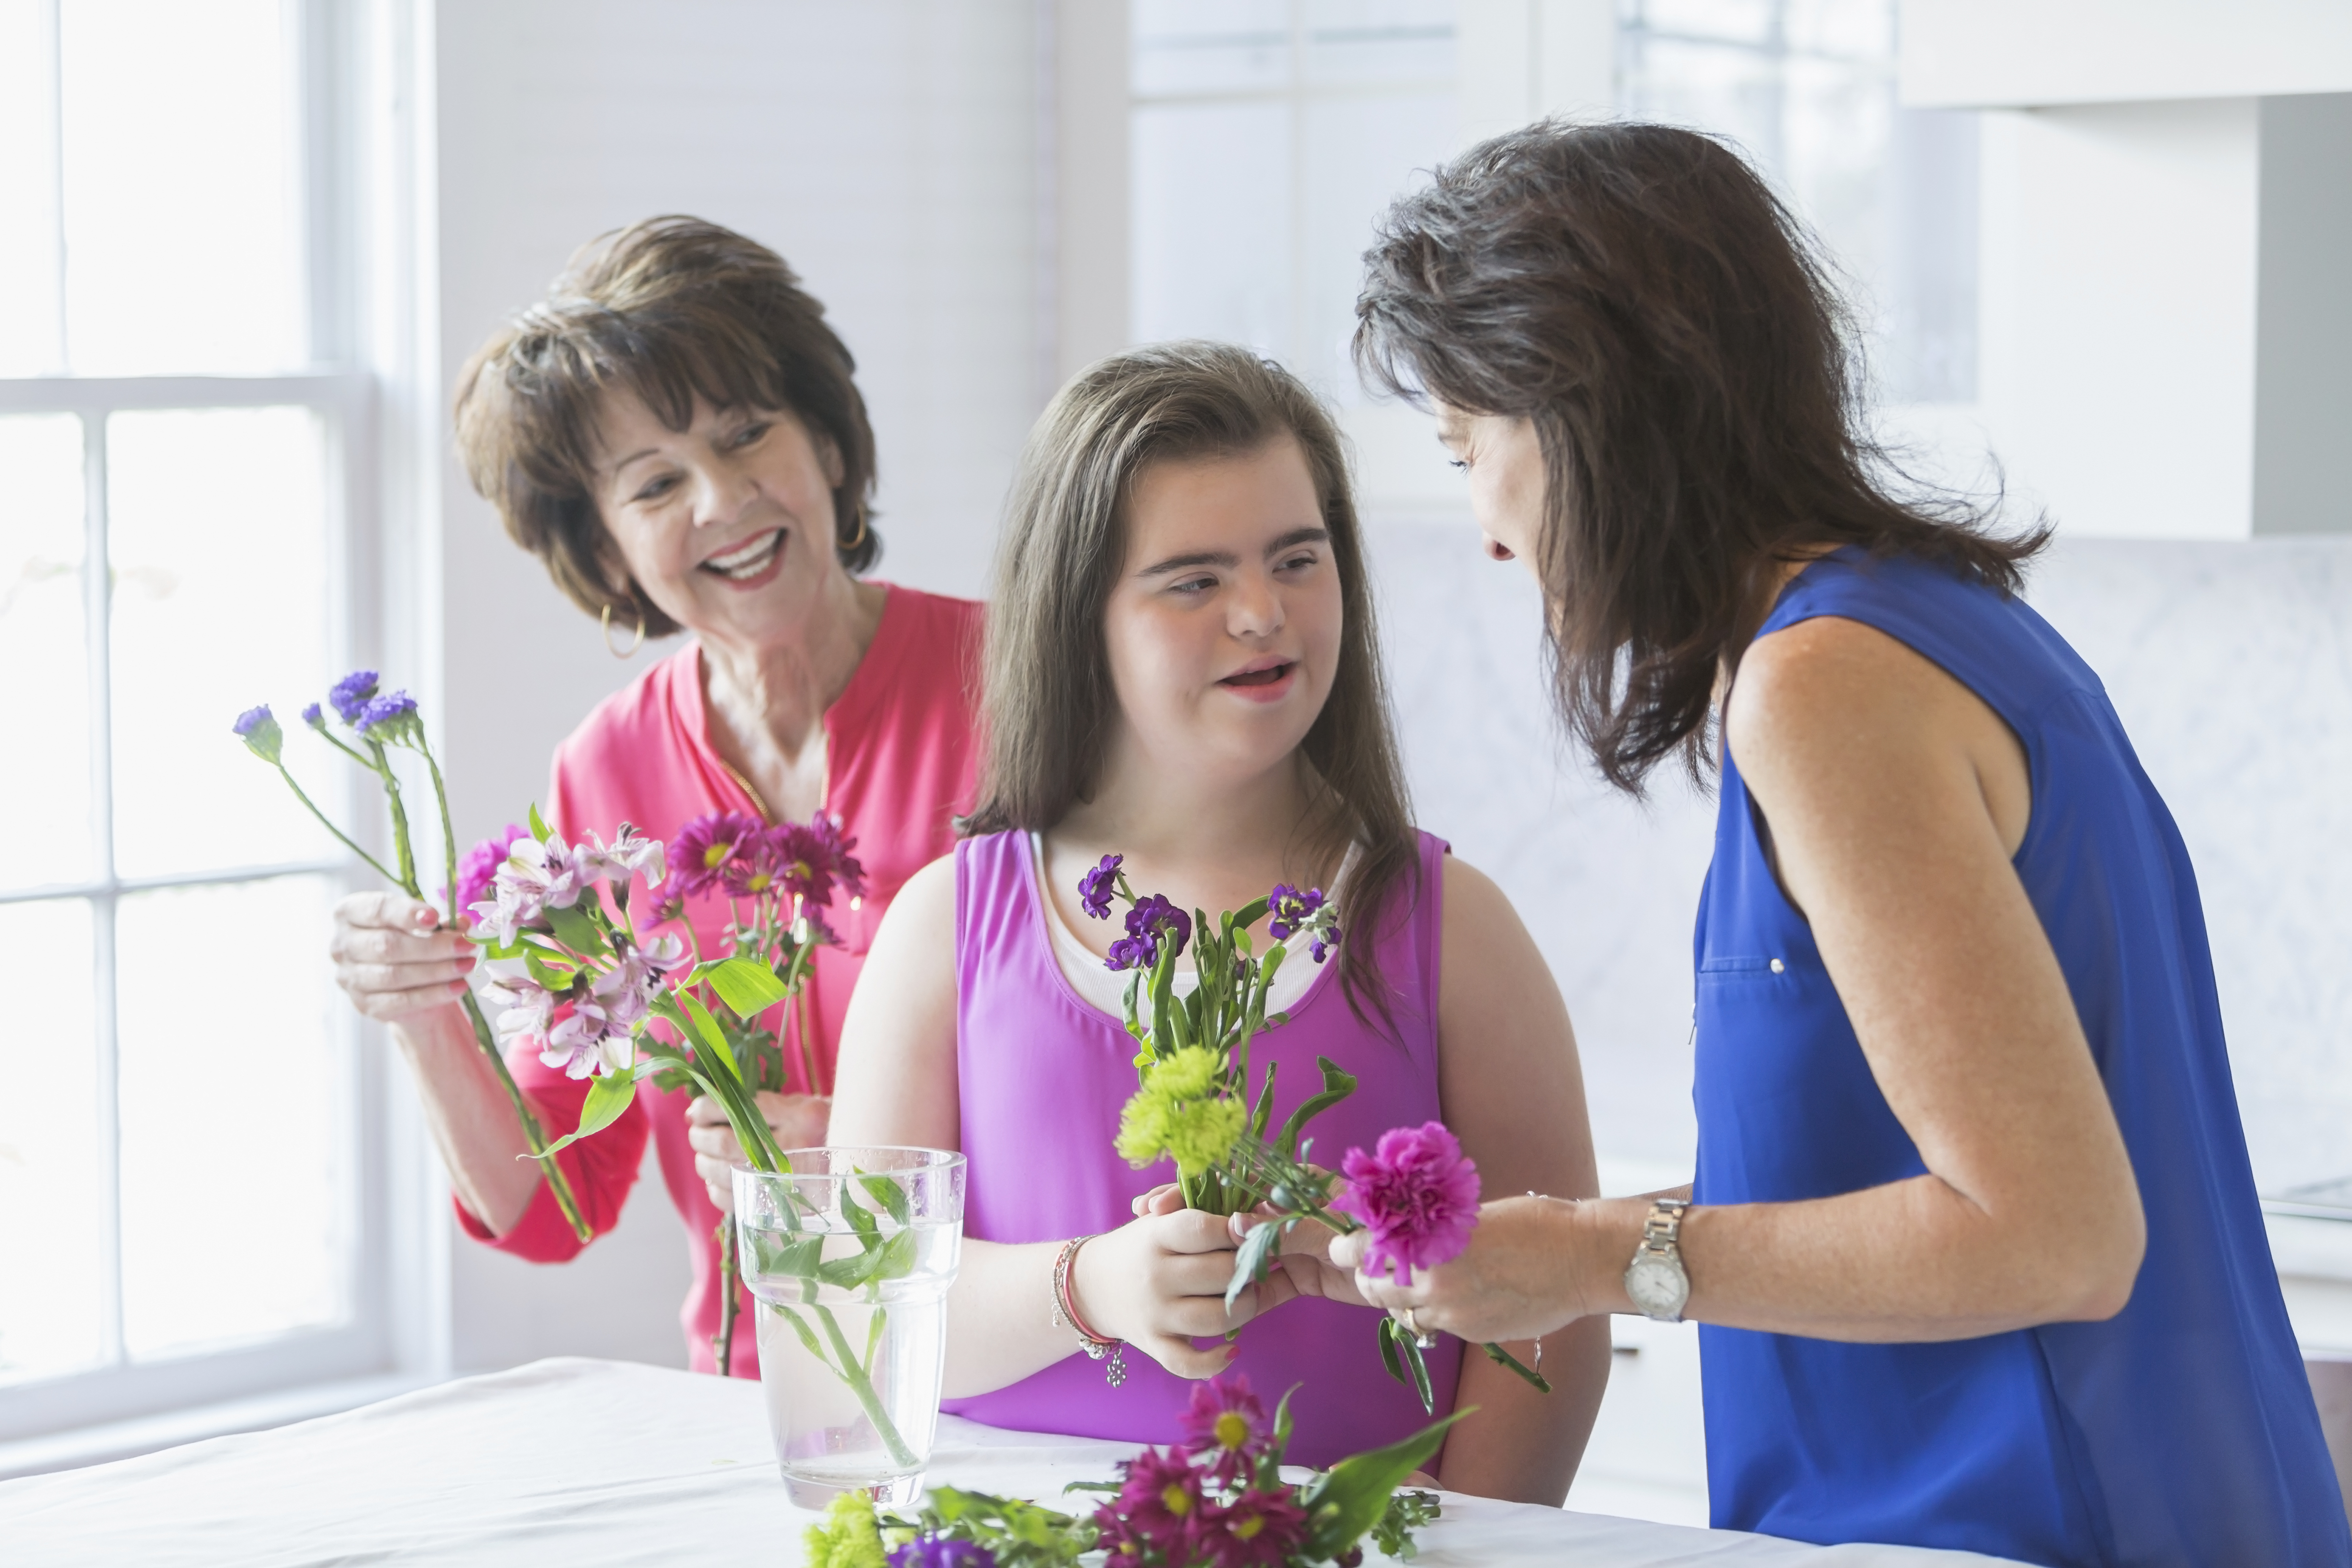 A teenage girl with downs syndrome arranging flowers with her mother and grandmother. They are holding cut flowers in their hands, talking and looking at mom. They are at home in the kitchen by a bright, sunny window.